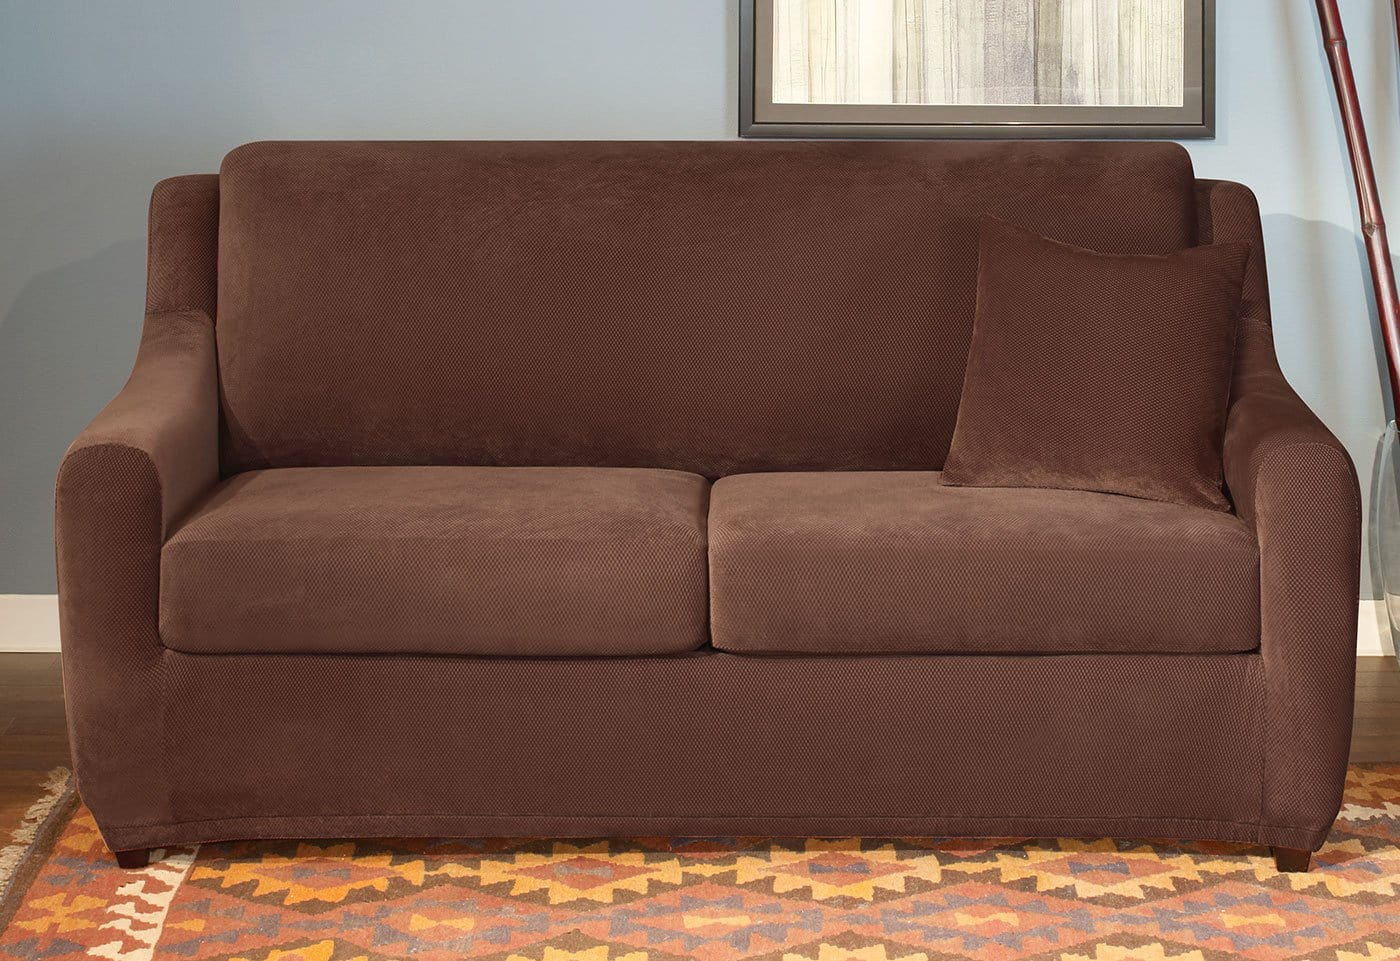 ... Stretch Pique Three Piece Queen Size Sleeper Sofa Slipcover